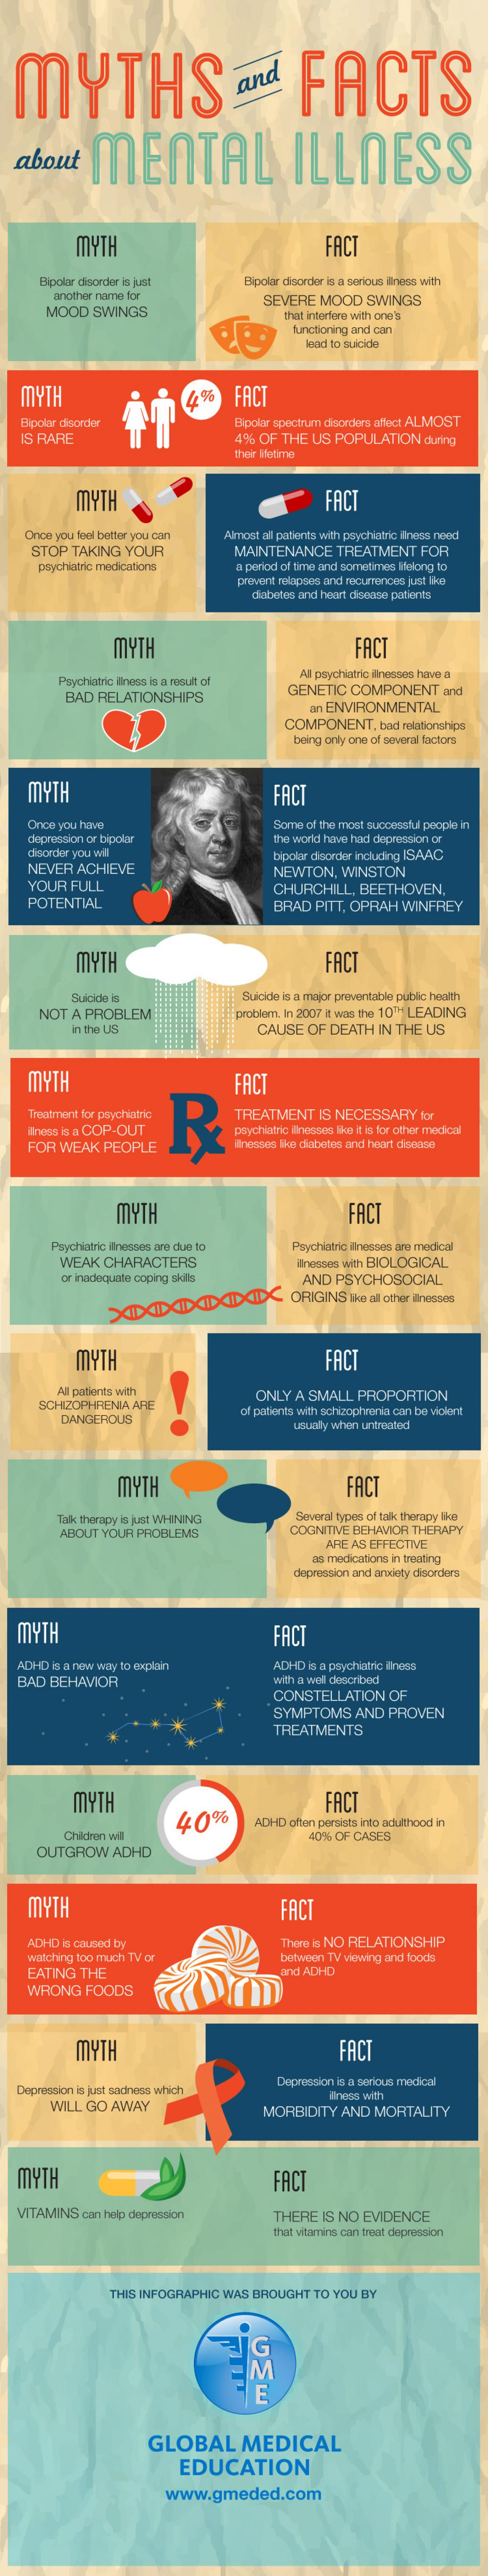 Myths and Facts About Mental Illness